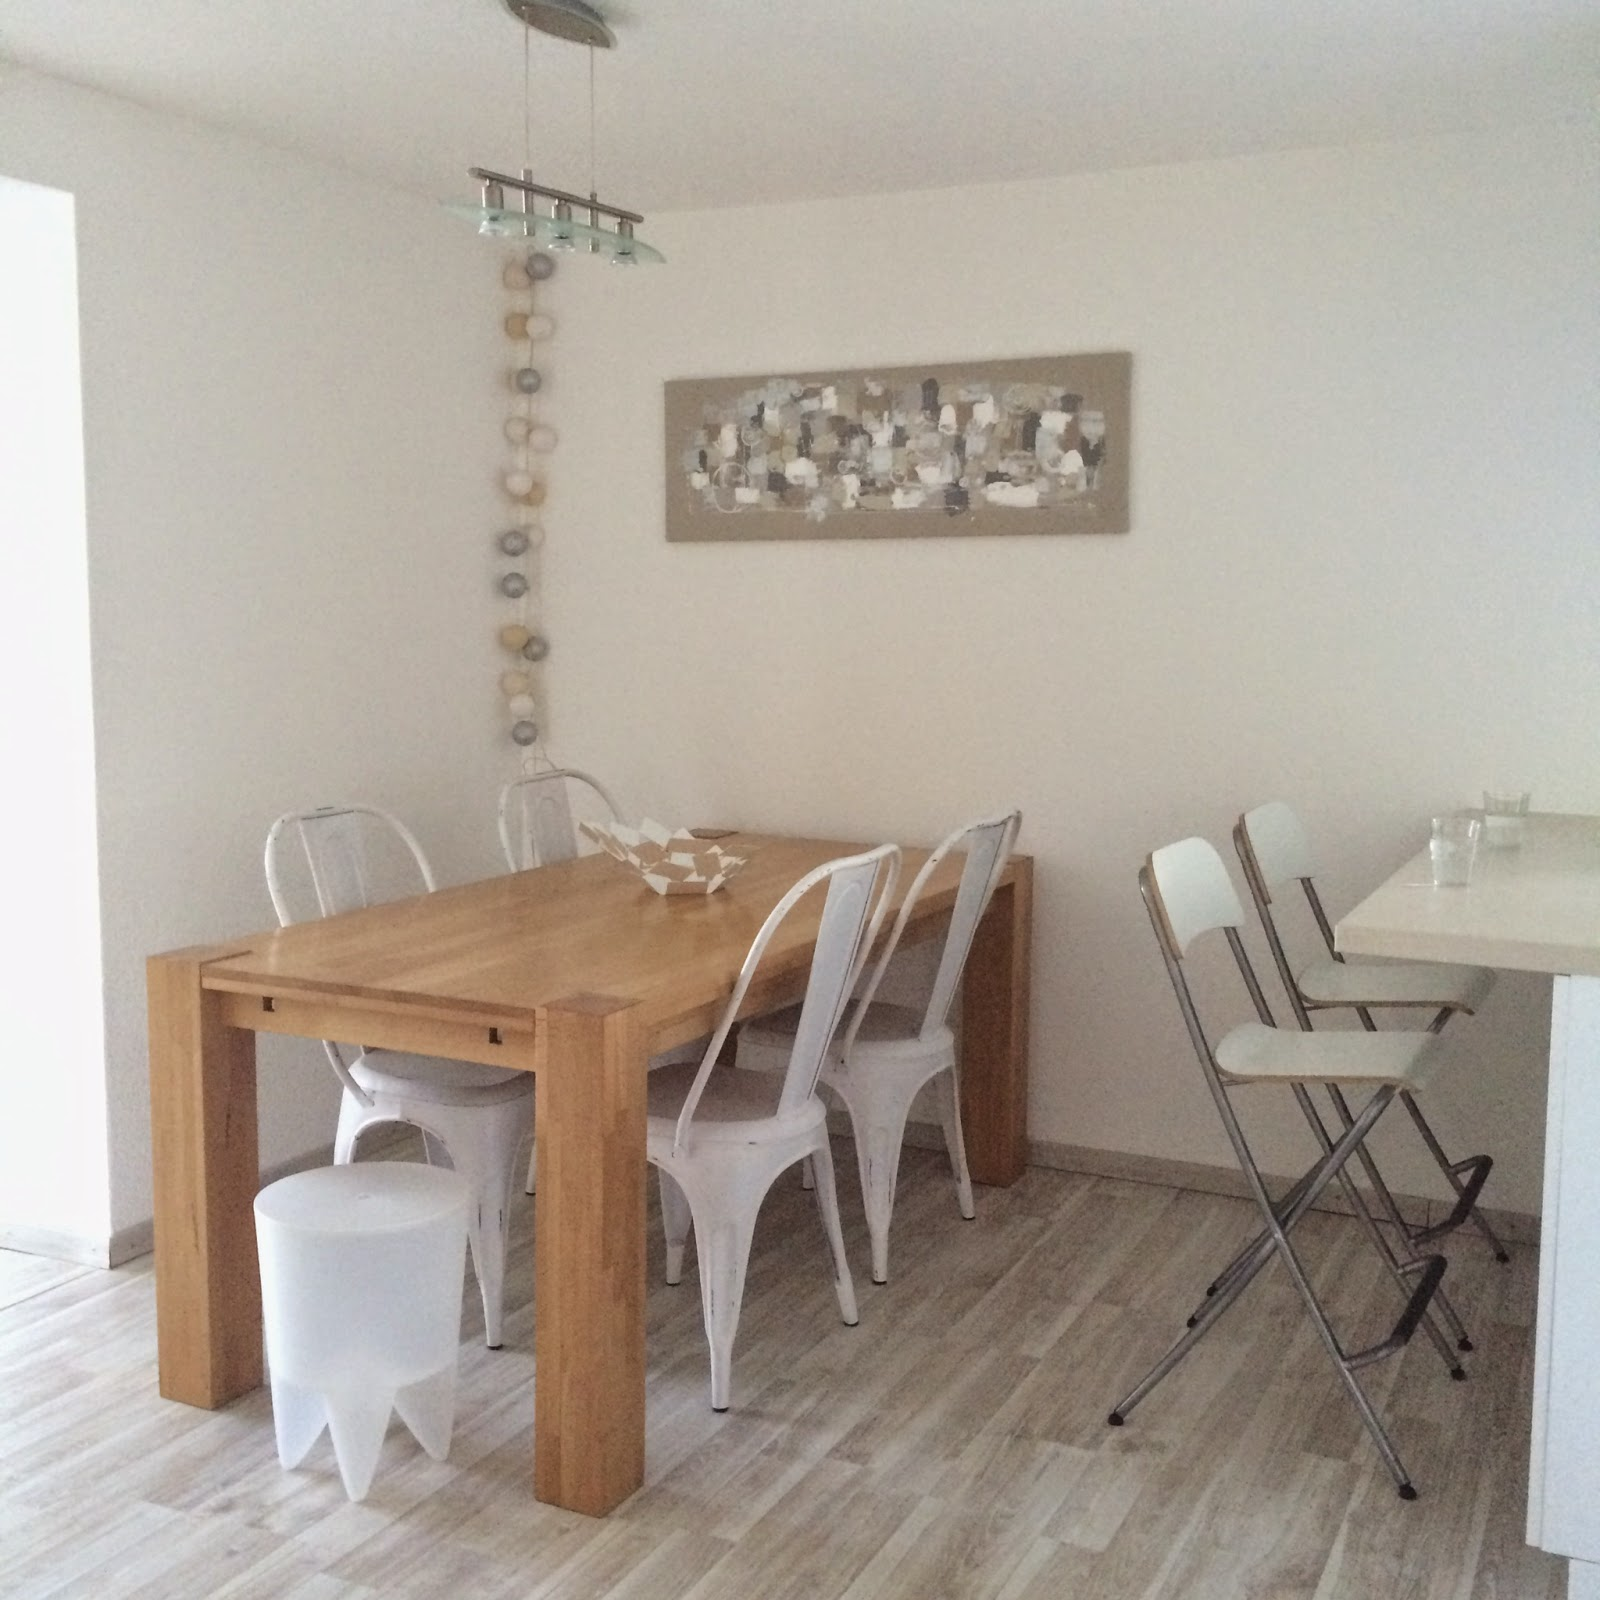 Deco scandinave salle a manger - Chaises blanches salle a manger ...